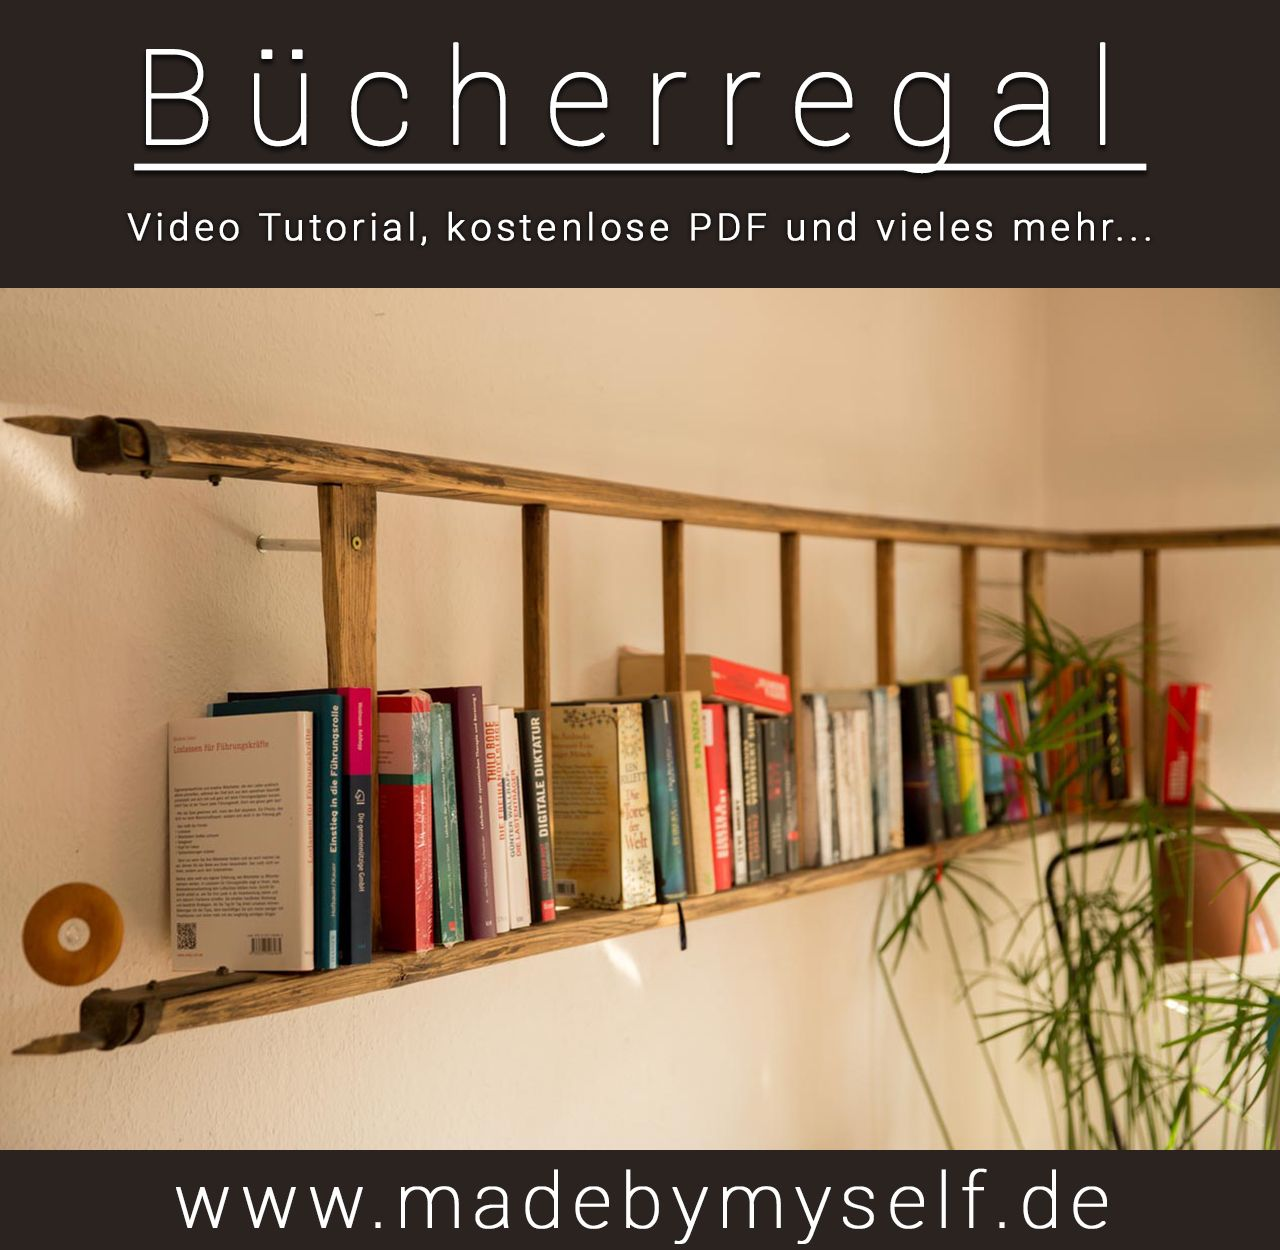 Bücherregal Leiter Bücherregal Regal Aus Alter Leiter Madebymyself Diy